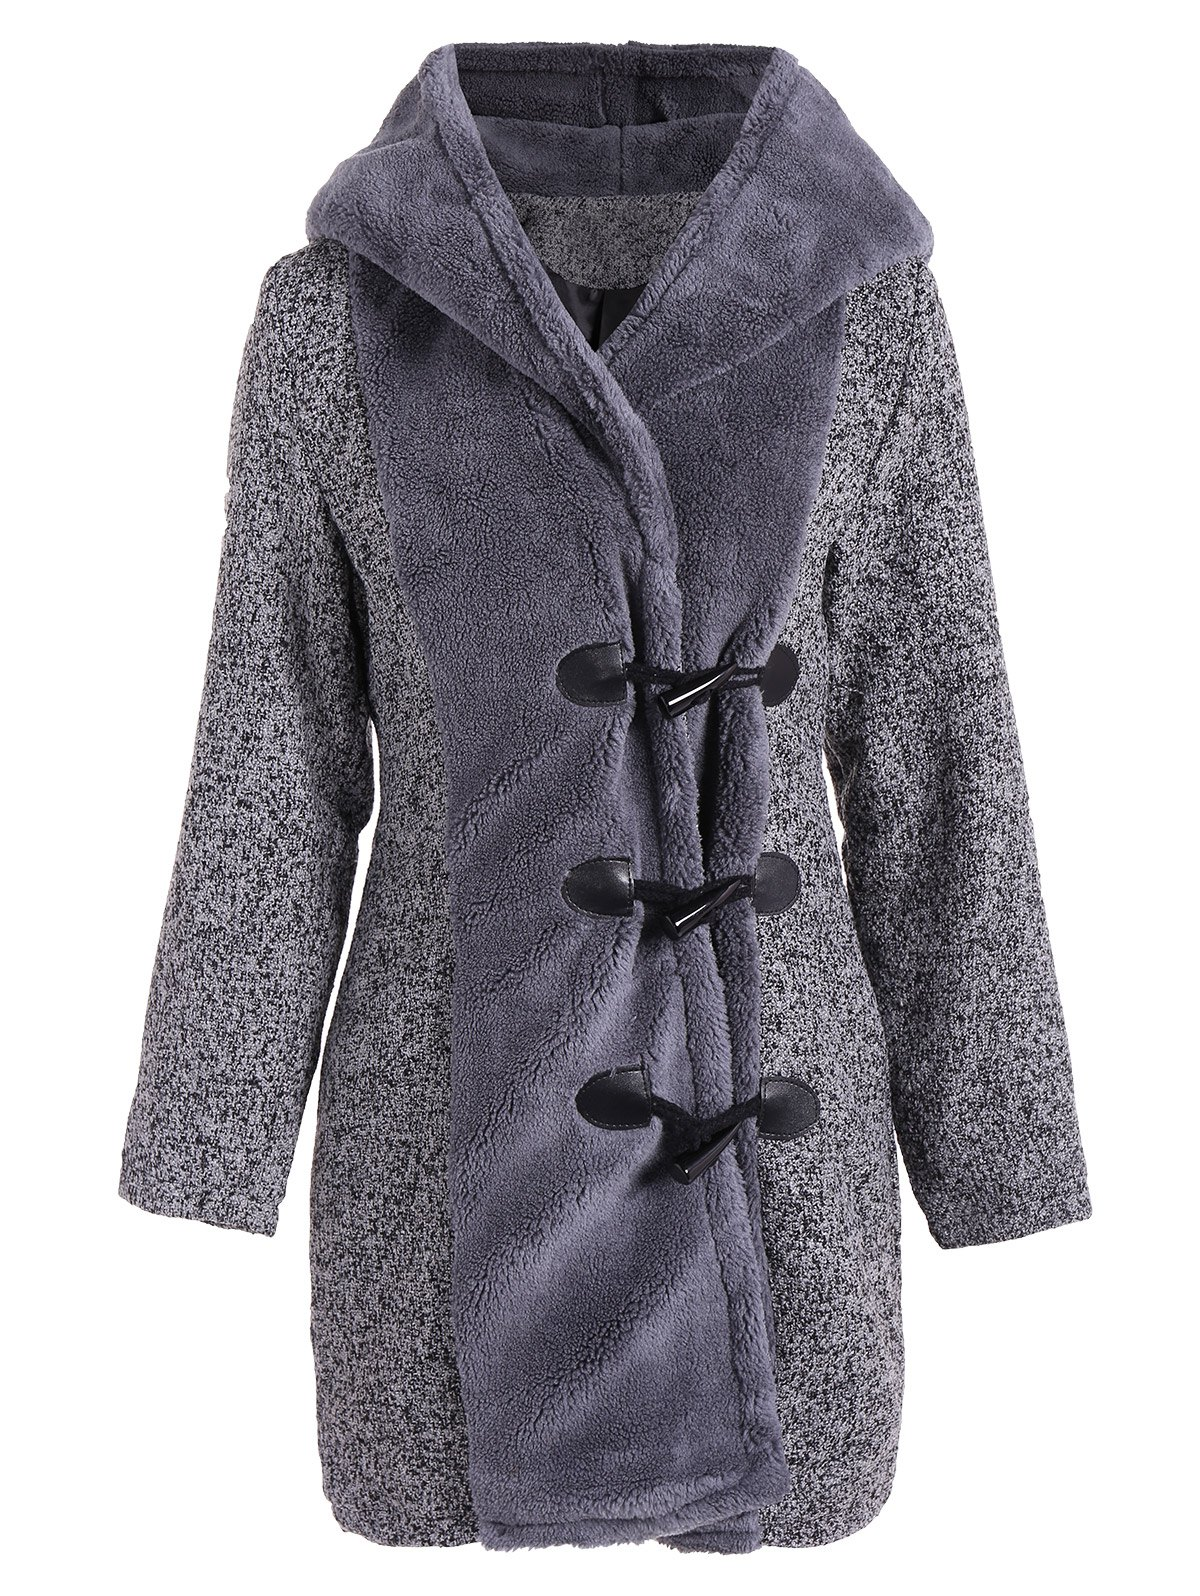 Duffle Hooded Coat - GRAY S